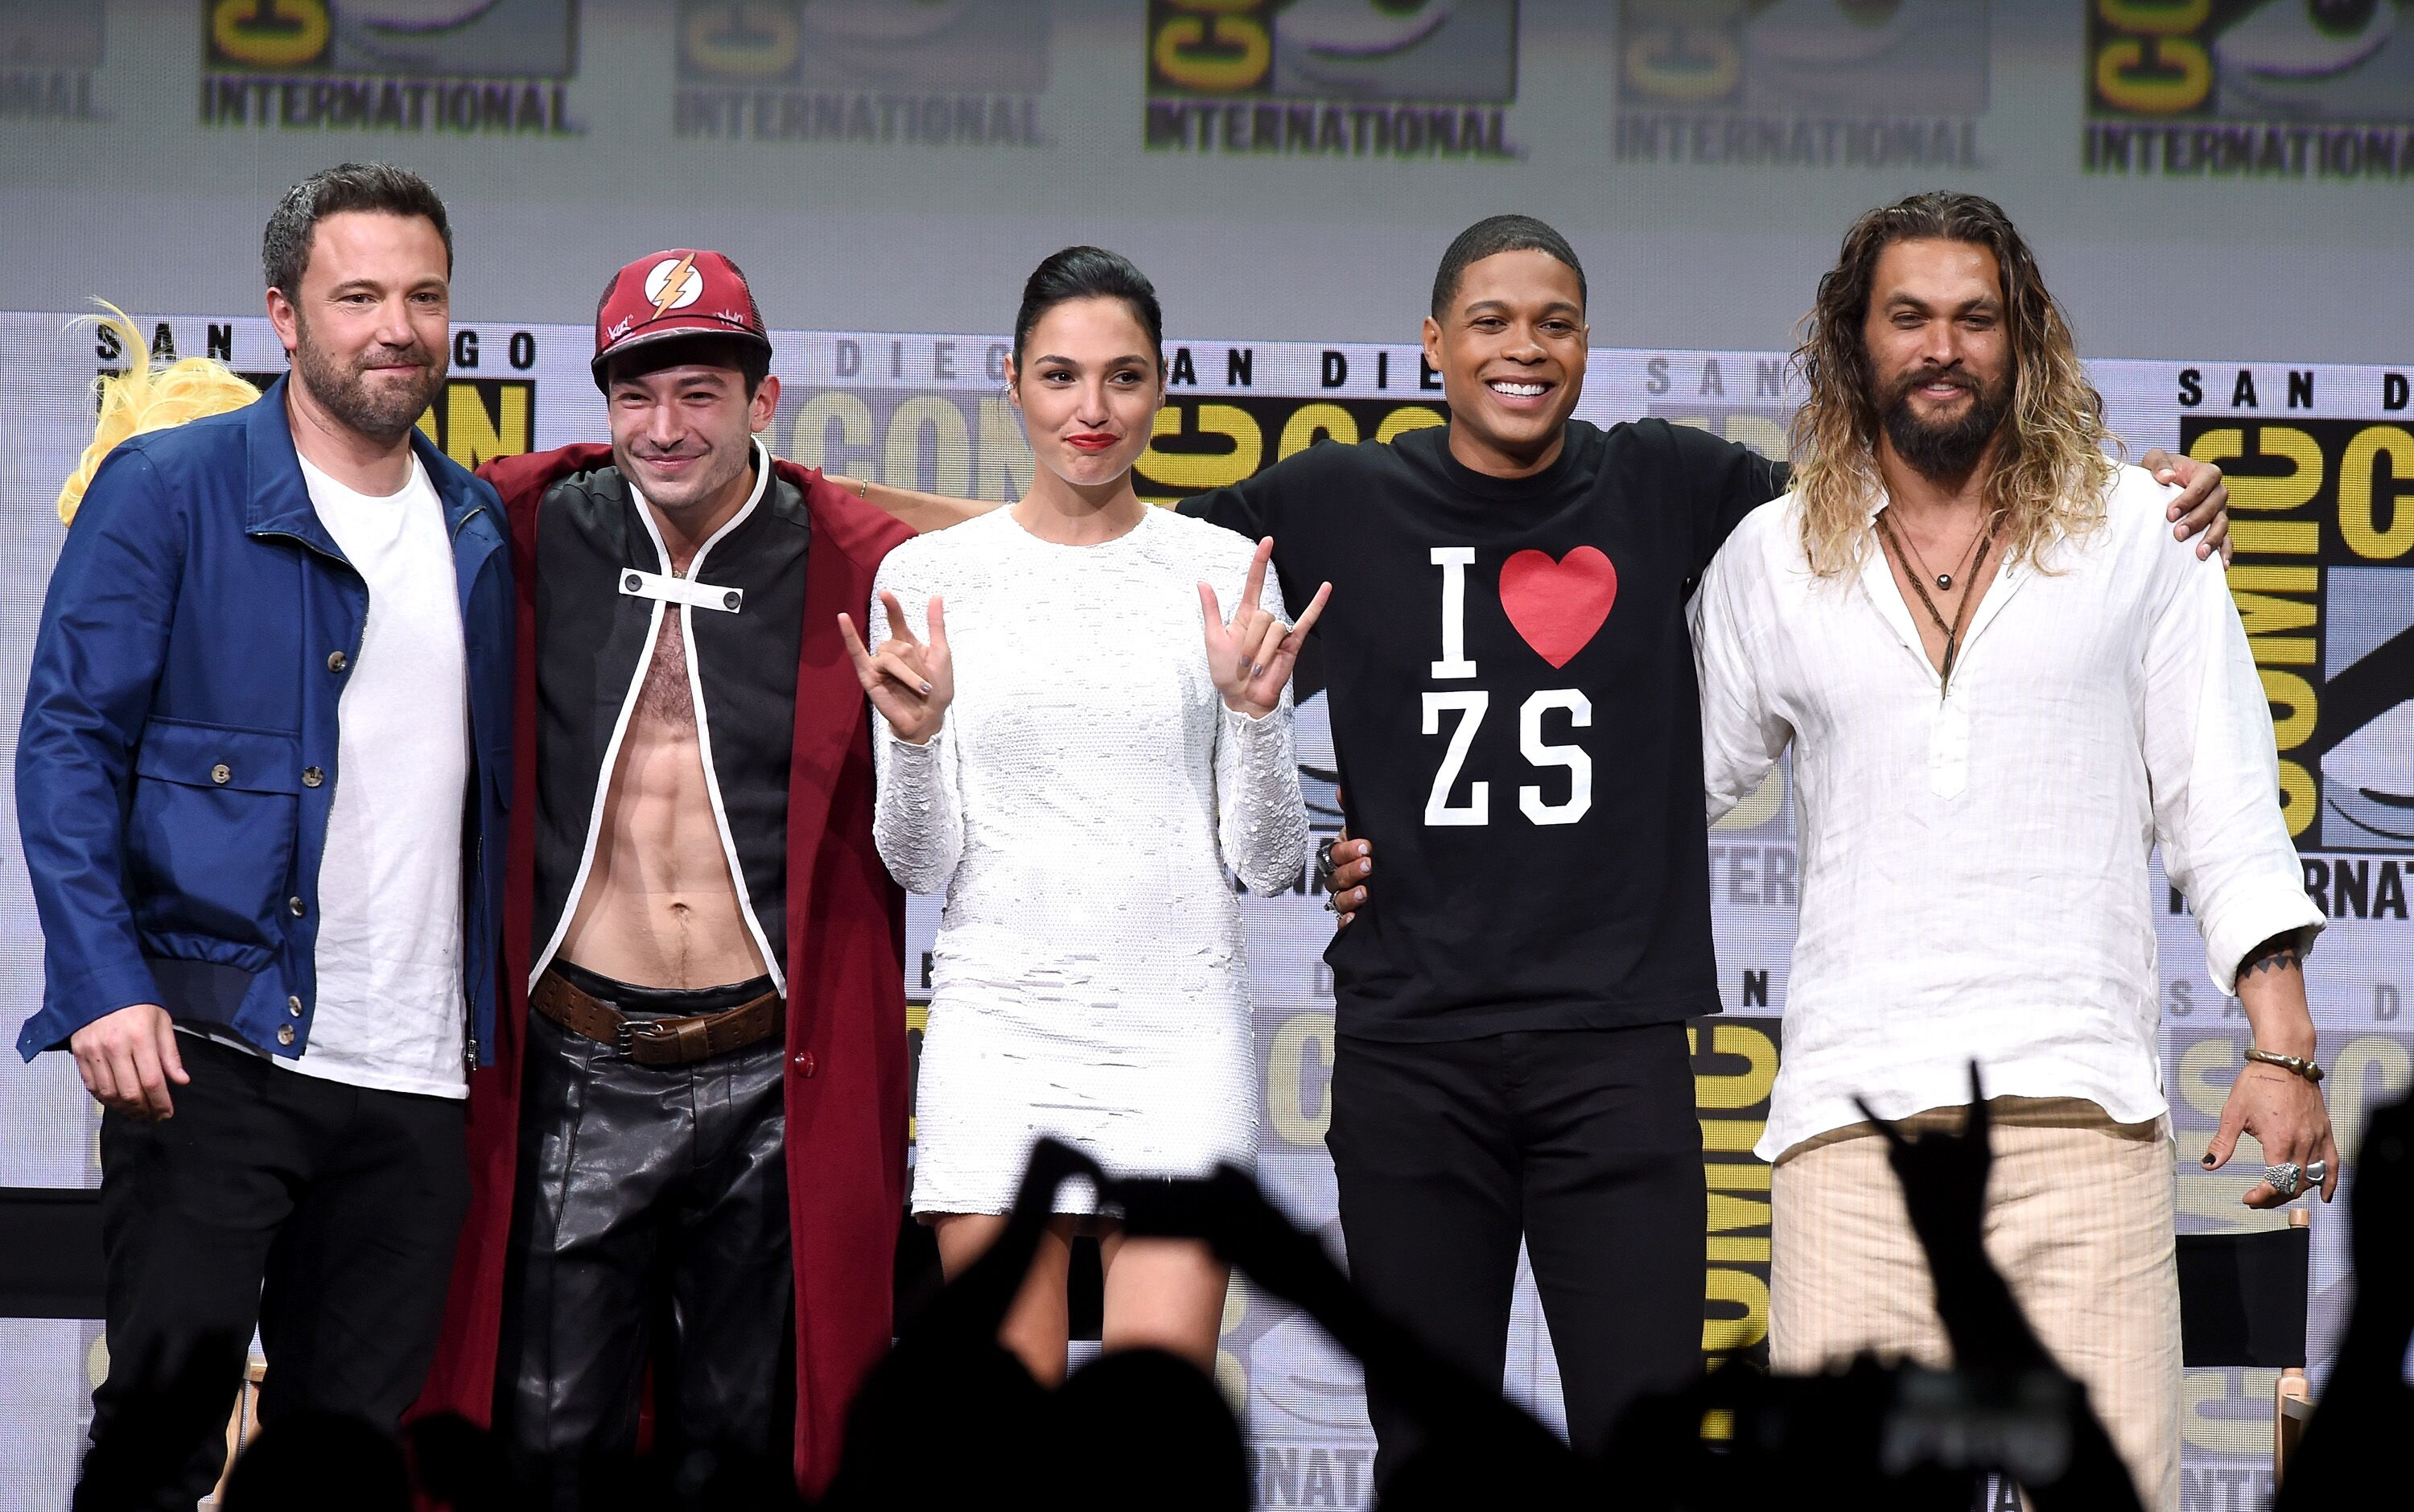 Comic-Con 2017: Watch all the movie trailers that debuted in San Diego